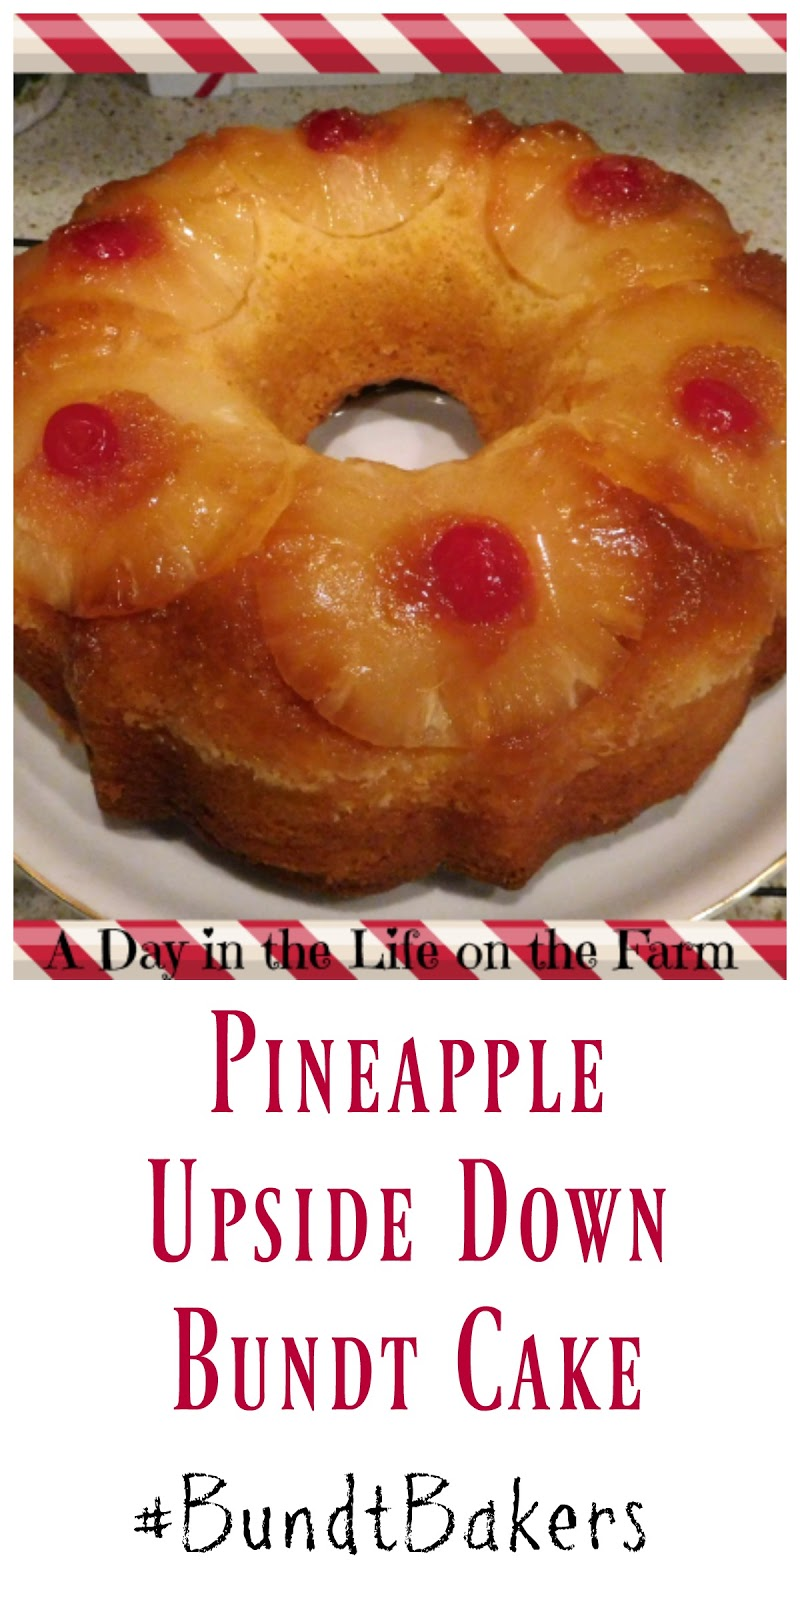 Can Olive Oil Be Used For Pineapple Upside Down Cake